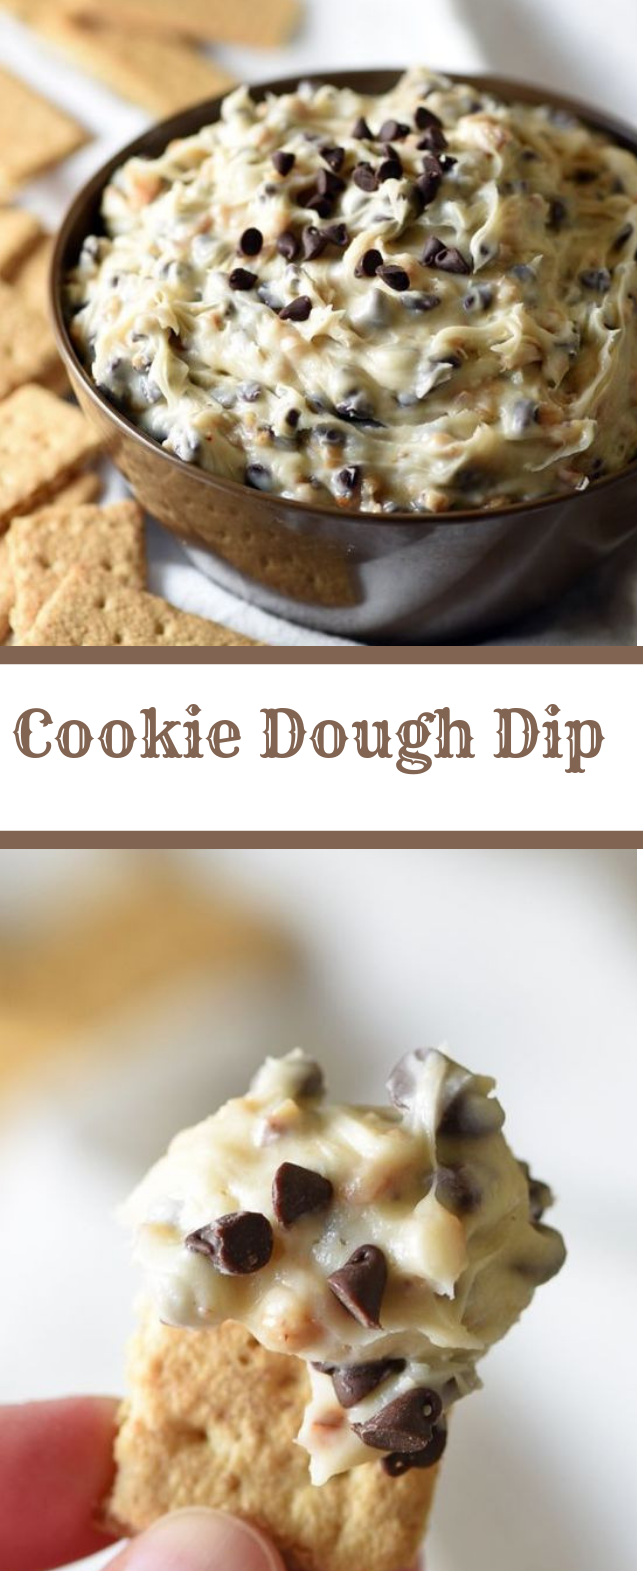 COOKIE DOUGH DIP #delicious #cookie